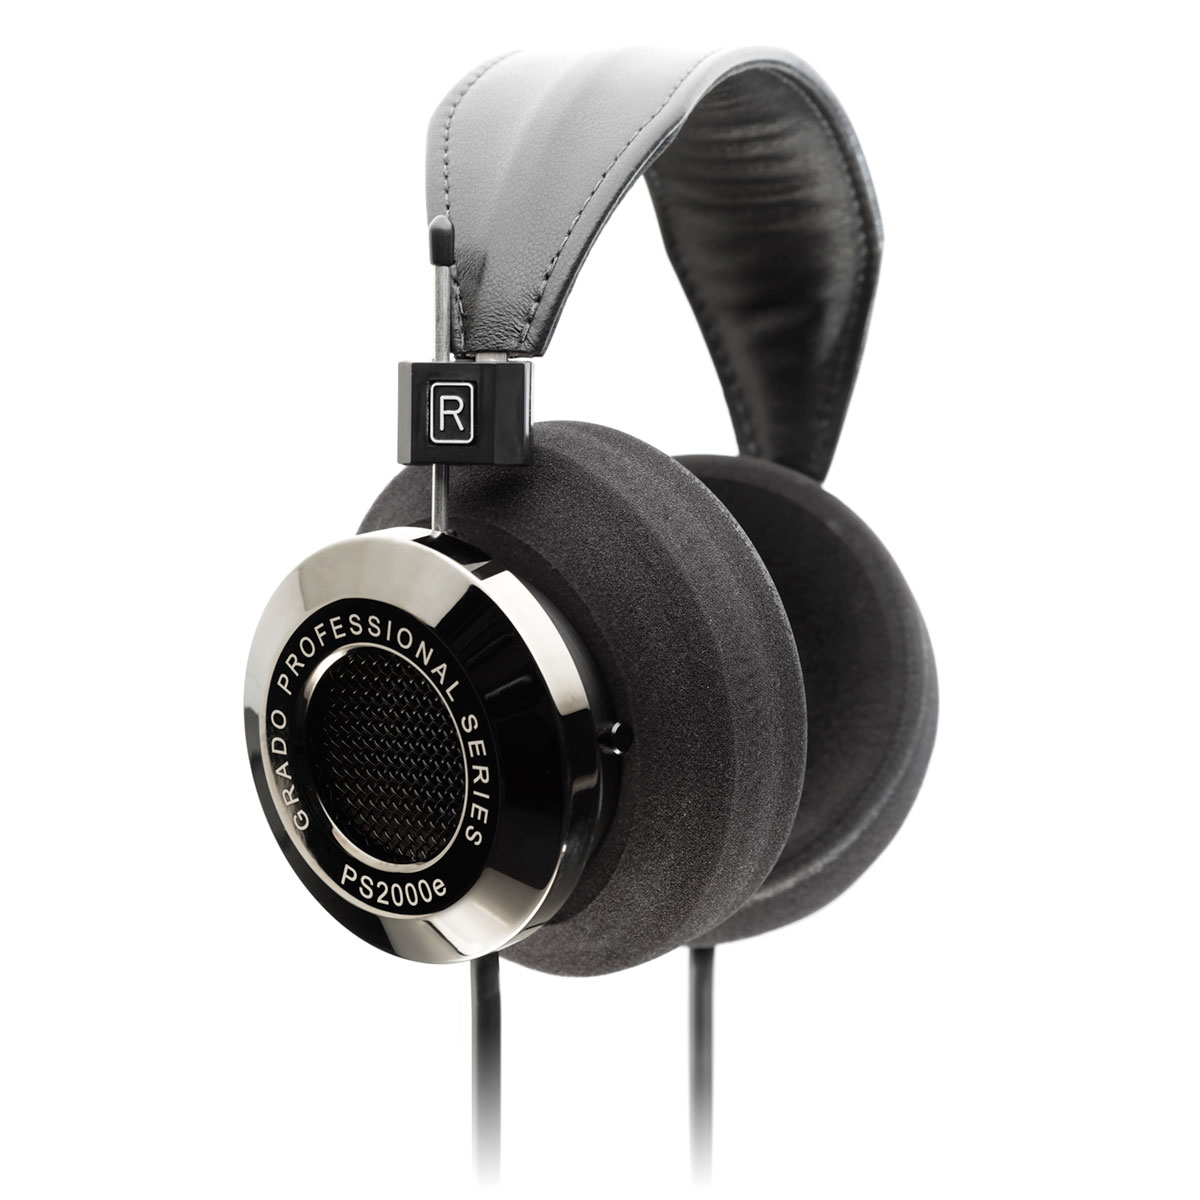 Grado PS2000e - photo by Jones Studio